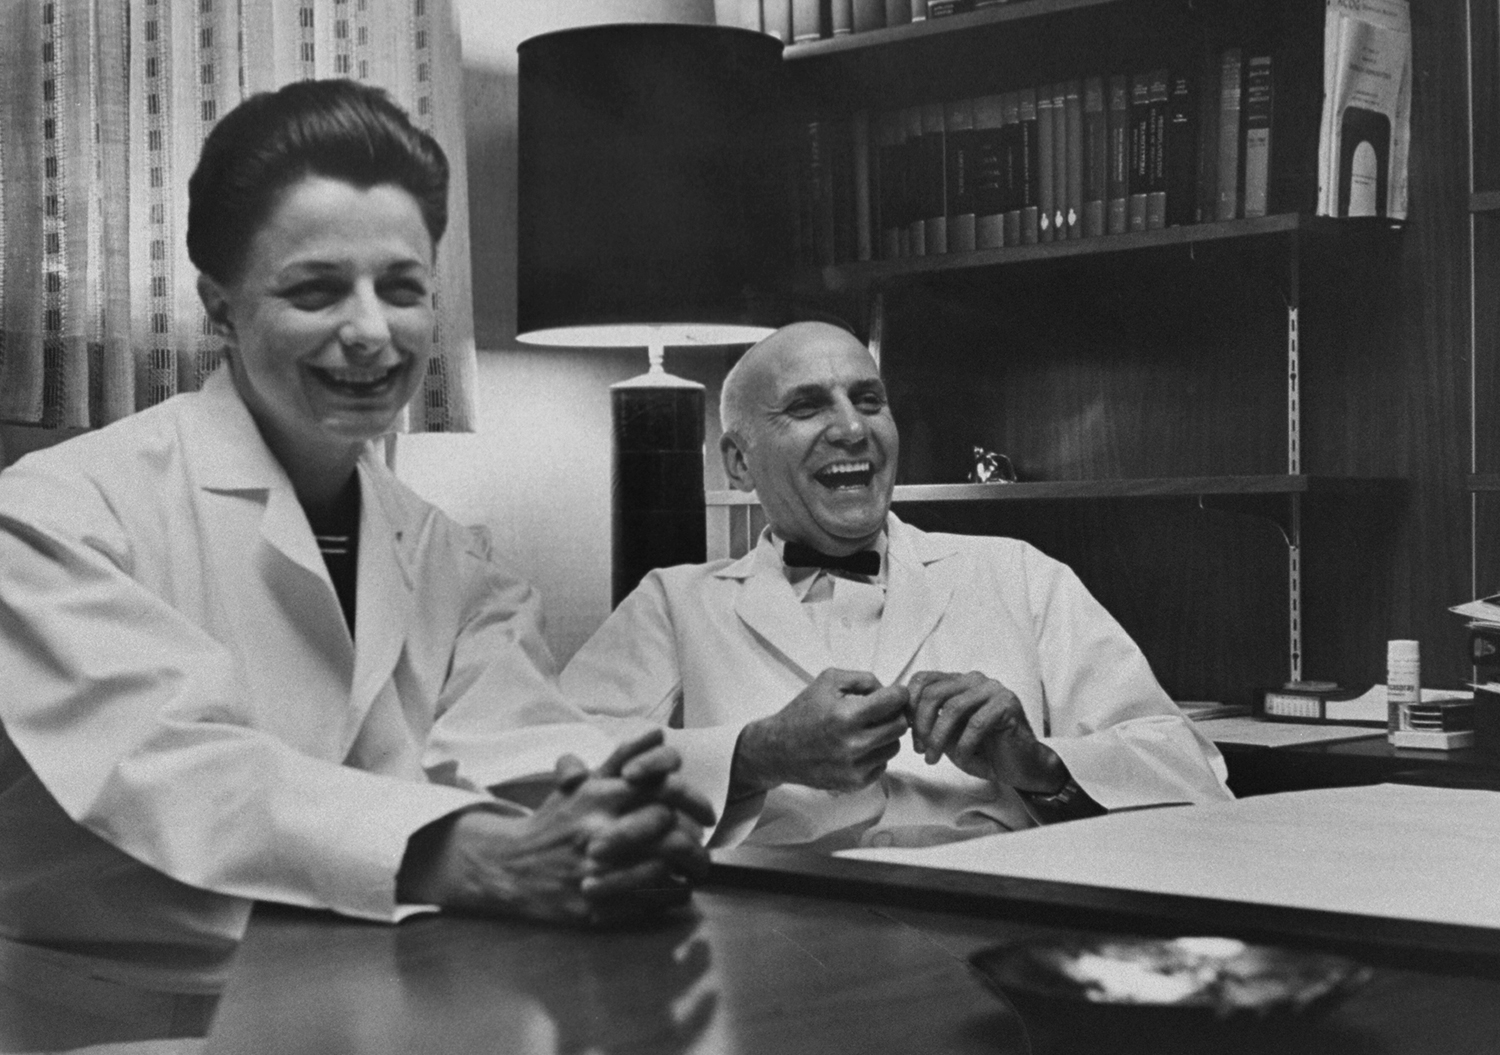 Caption from LIFE.  Mrs. Johnson and Dr. Masters enjoy a break from grueling work schedule. Says Mrs. Johnson: 'Dr. Masters is an incredibly funny man, He's a superb mime. And his humor is very subtle. He makes a joke, and five minutes later I begin to crack up.'